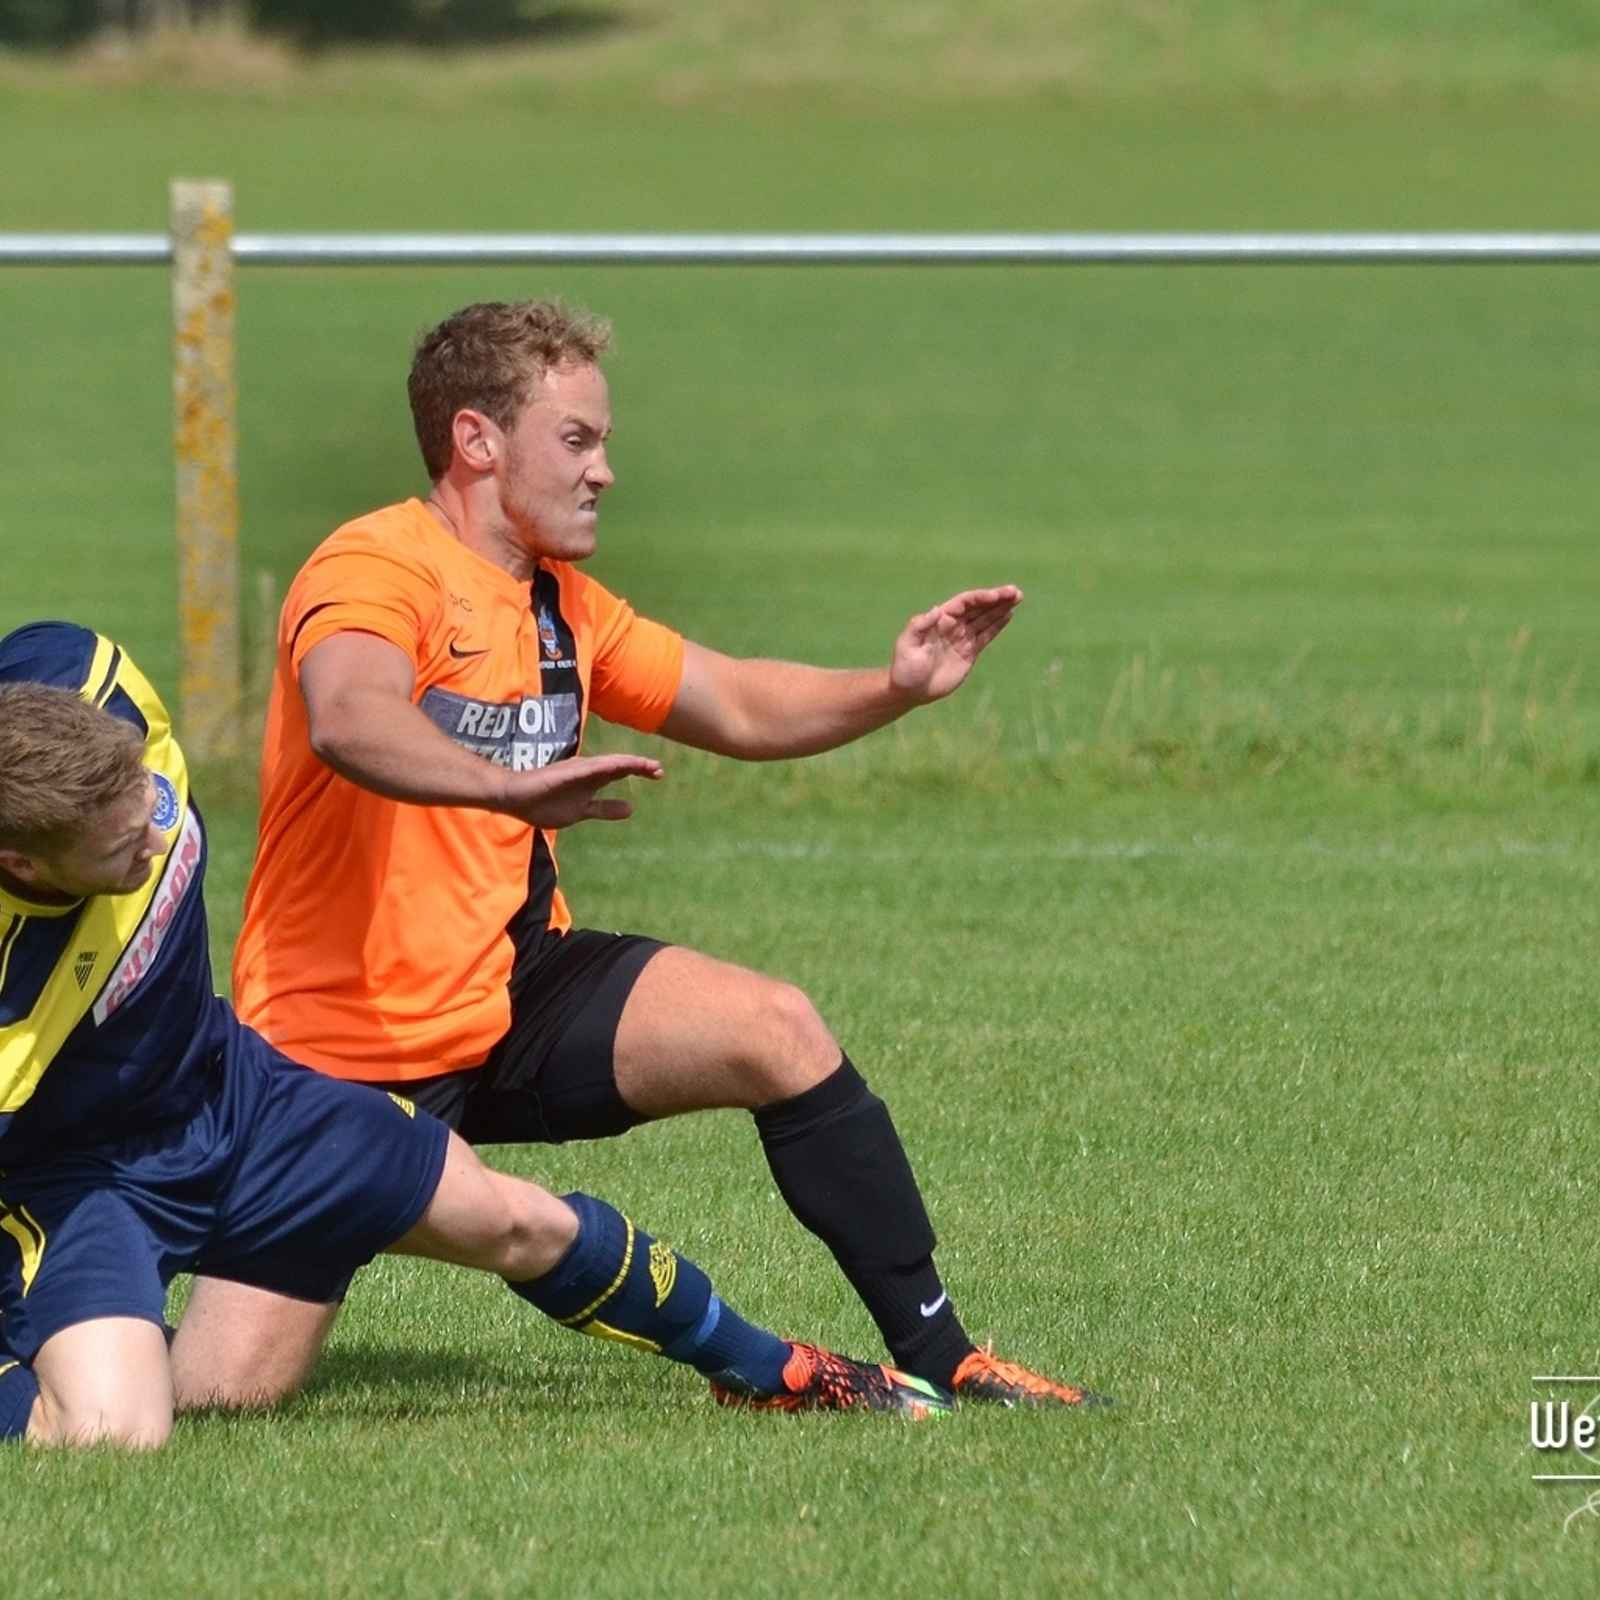 REPORT: Wetherby Athletic 1 v 1 Shelley FC